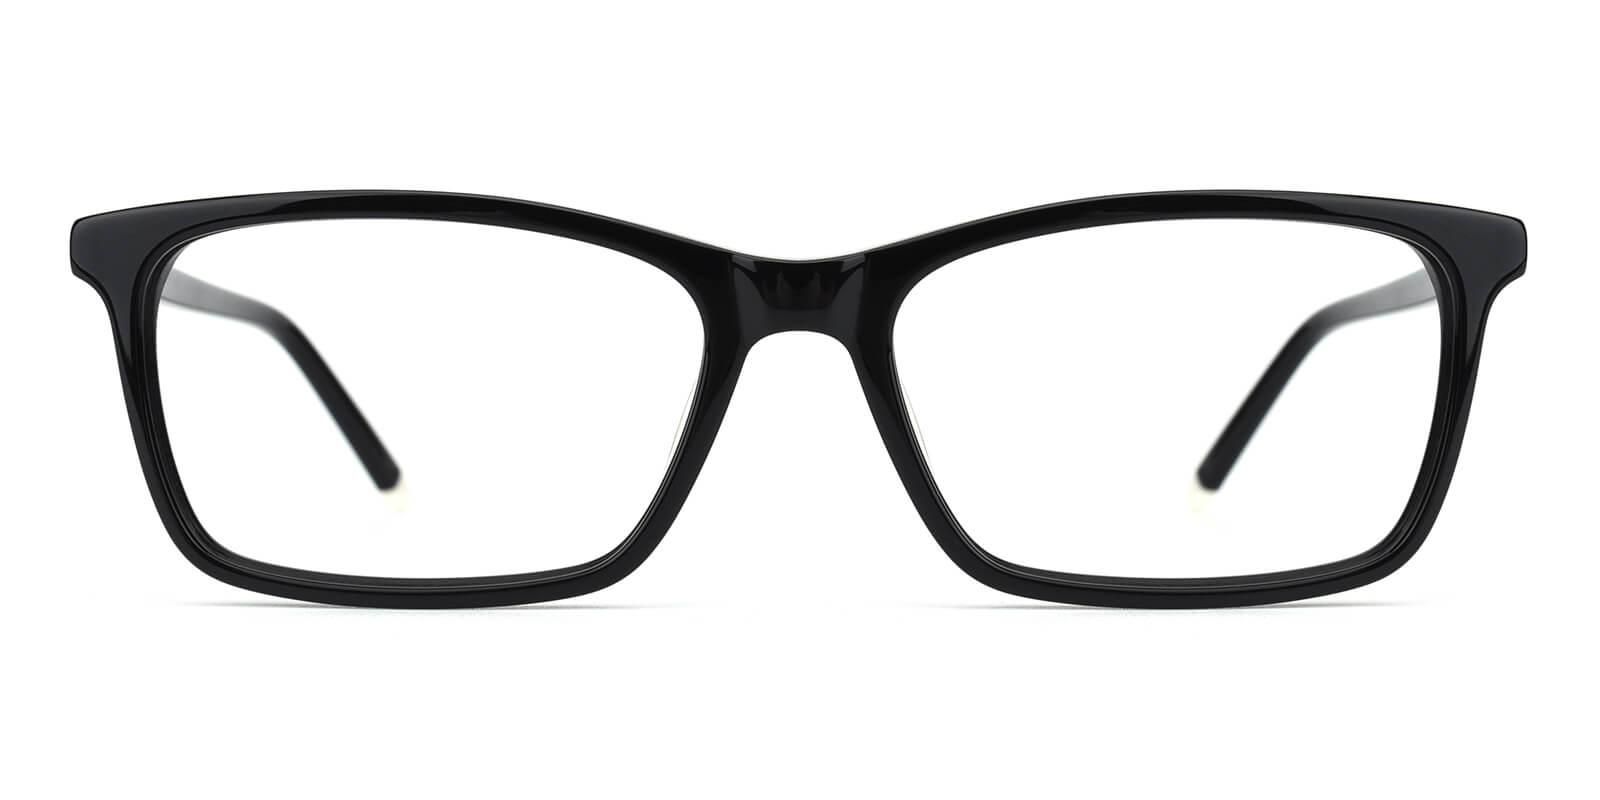 Crane-Black-Rectangle-Acetate-Eyeglasses-additional2